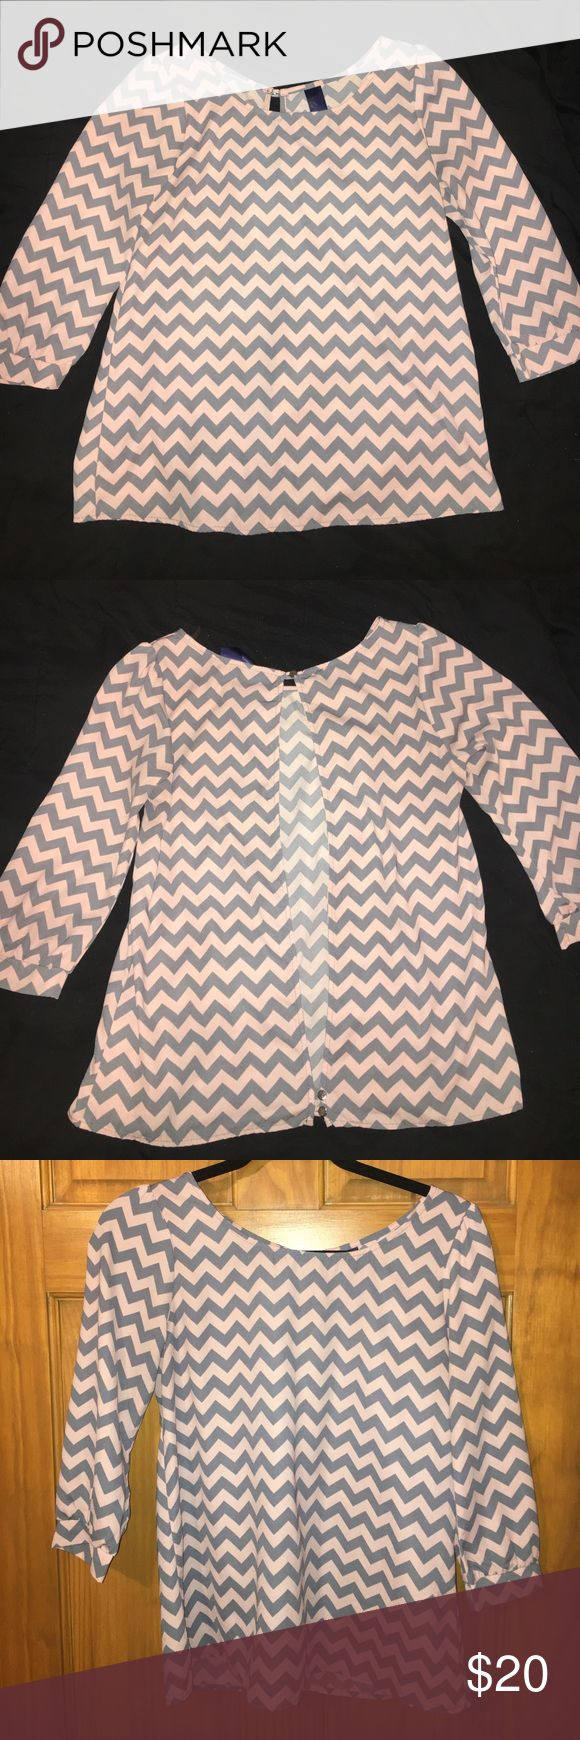 Francesca's Chevron Blouse Francesca's Pink/Grey Chevron Blouse. 3/4 Sleeve and split back with button closure on top and bottom. Francesca's Collections Tops Blouses